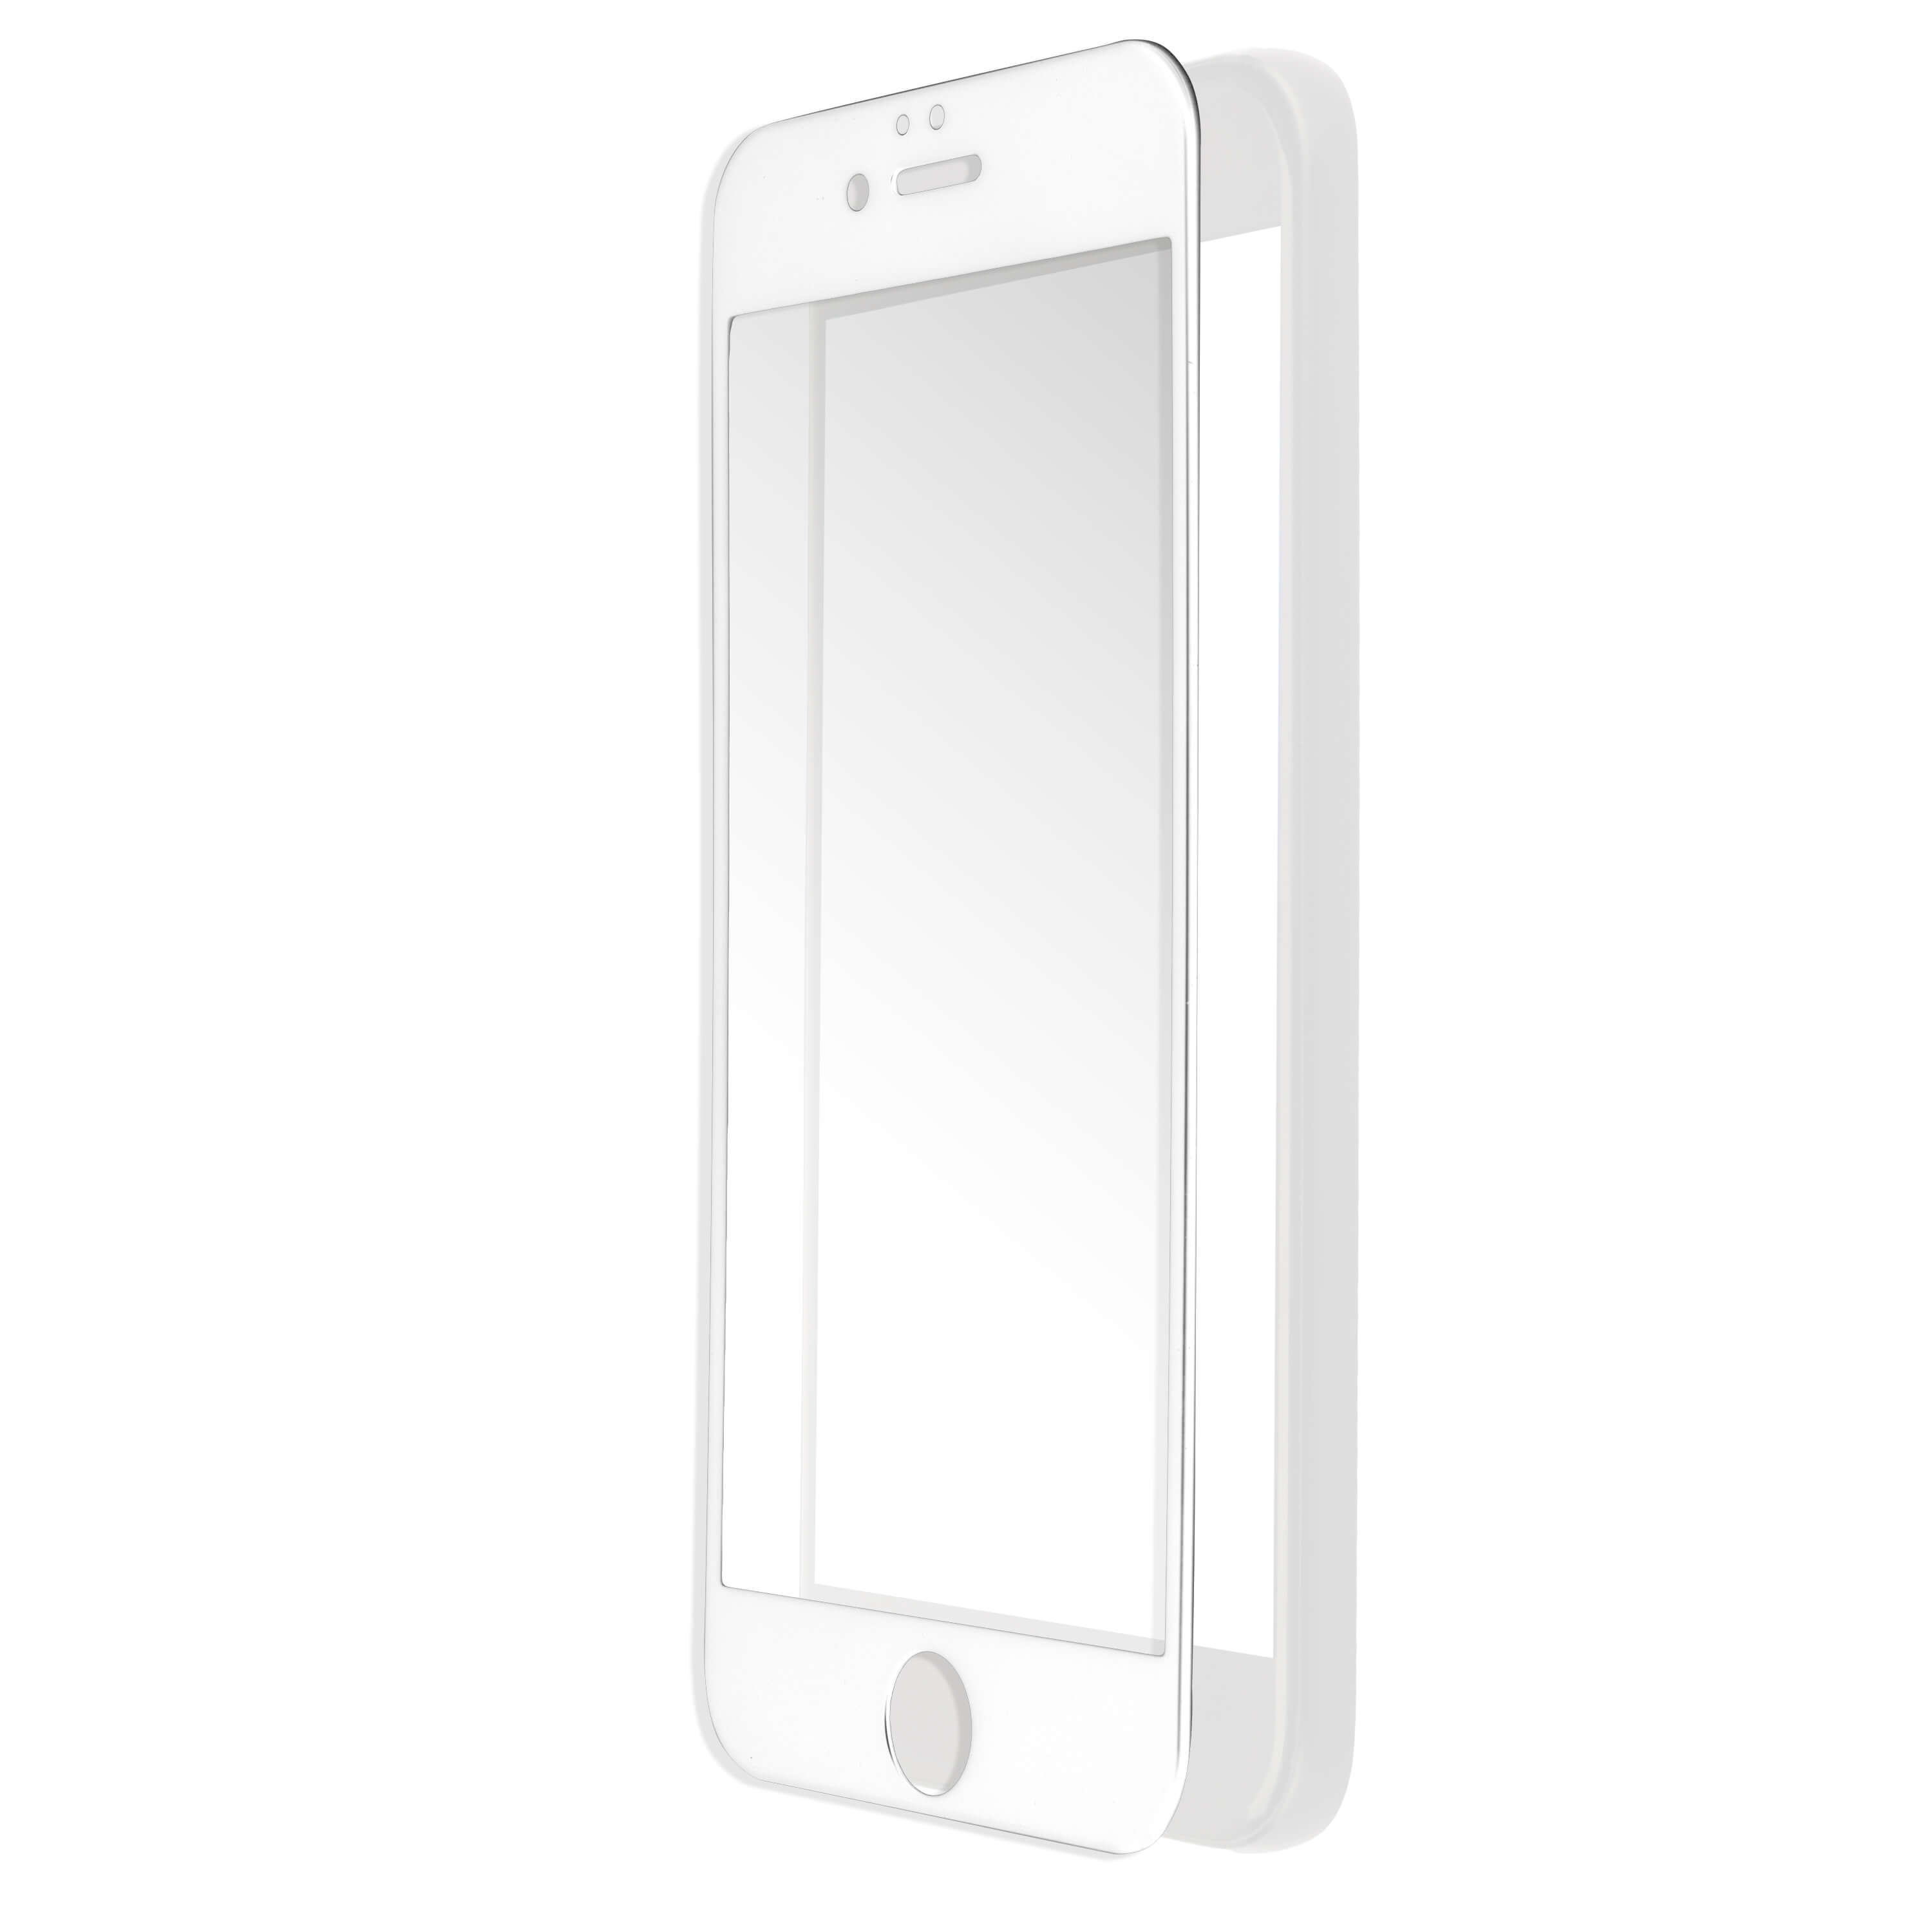 4smarts Second Glass Curved 2.5D for iPhone 6, iPhone 6s (white)